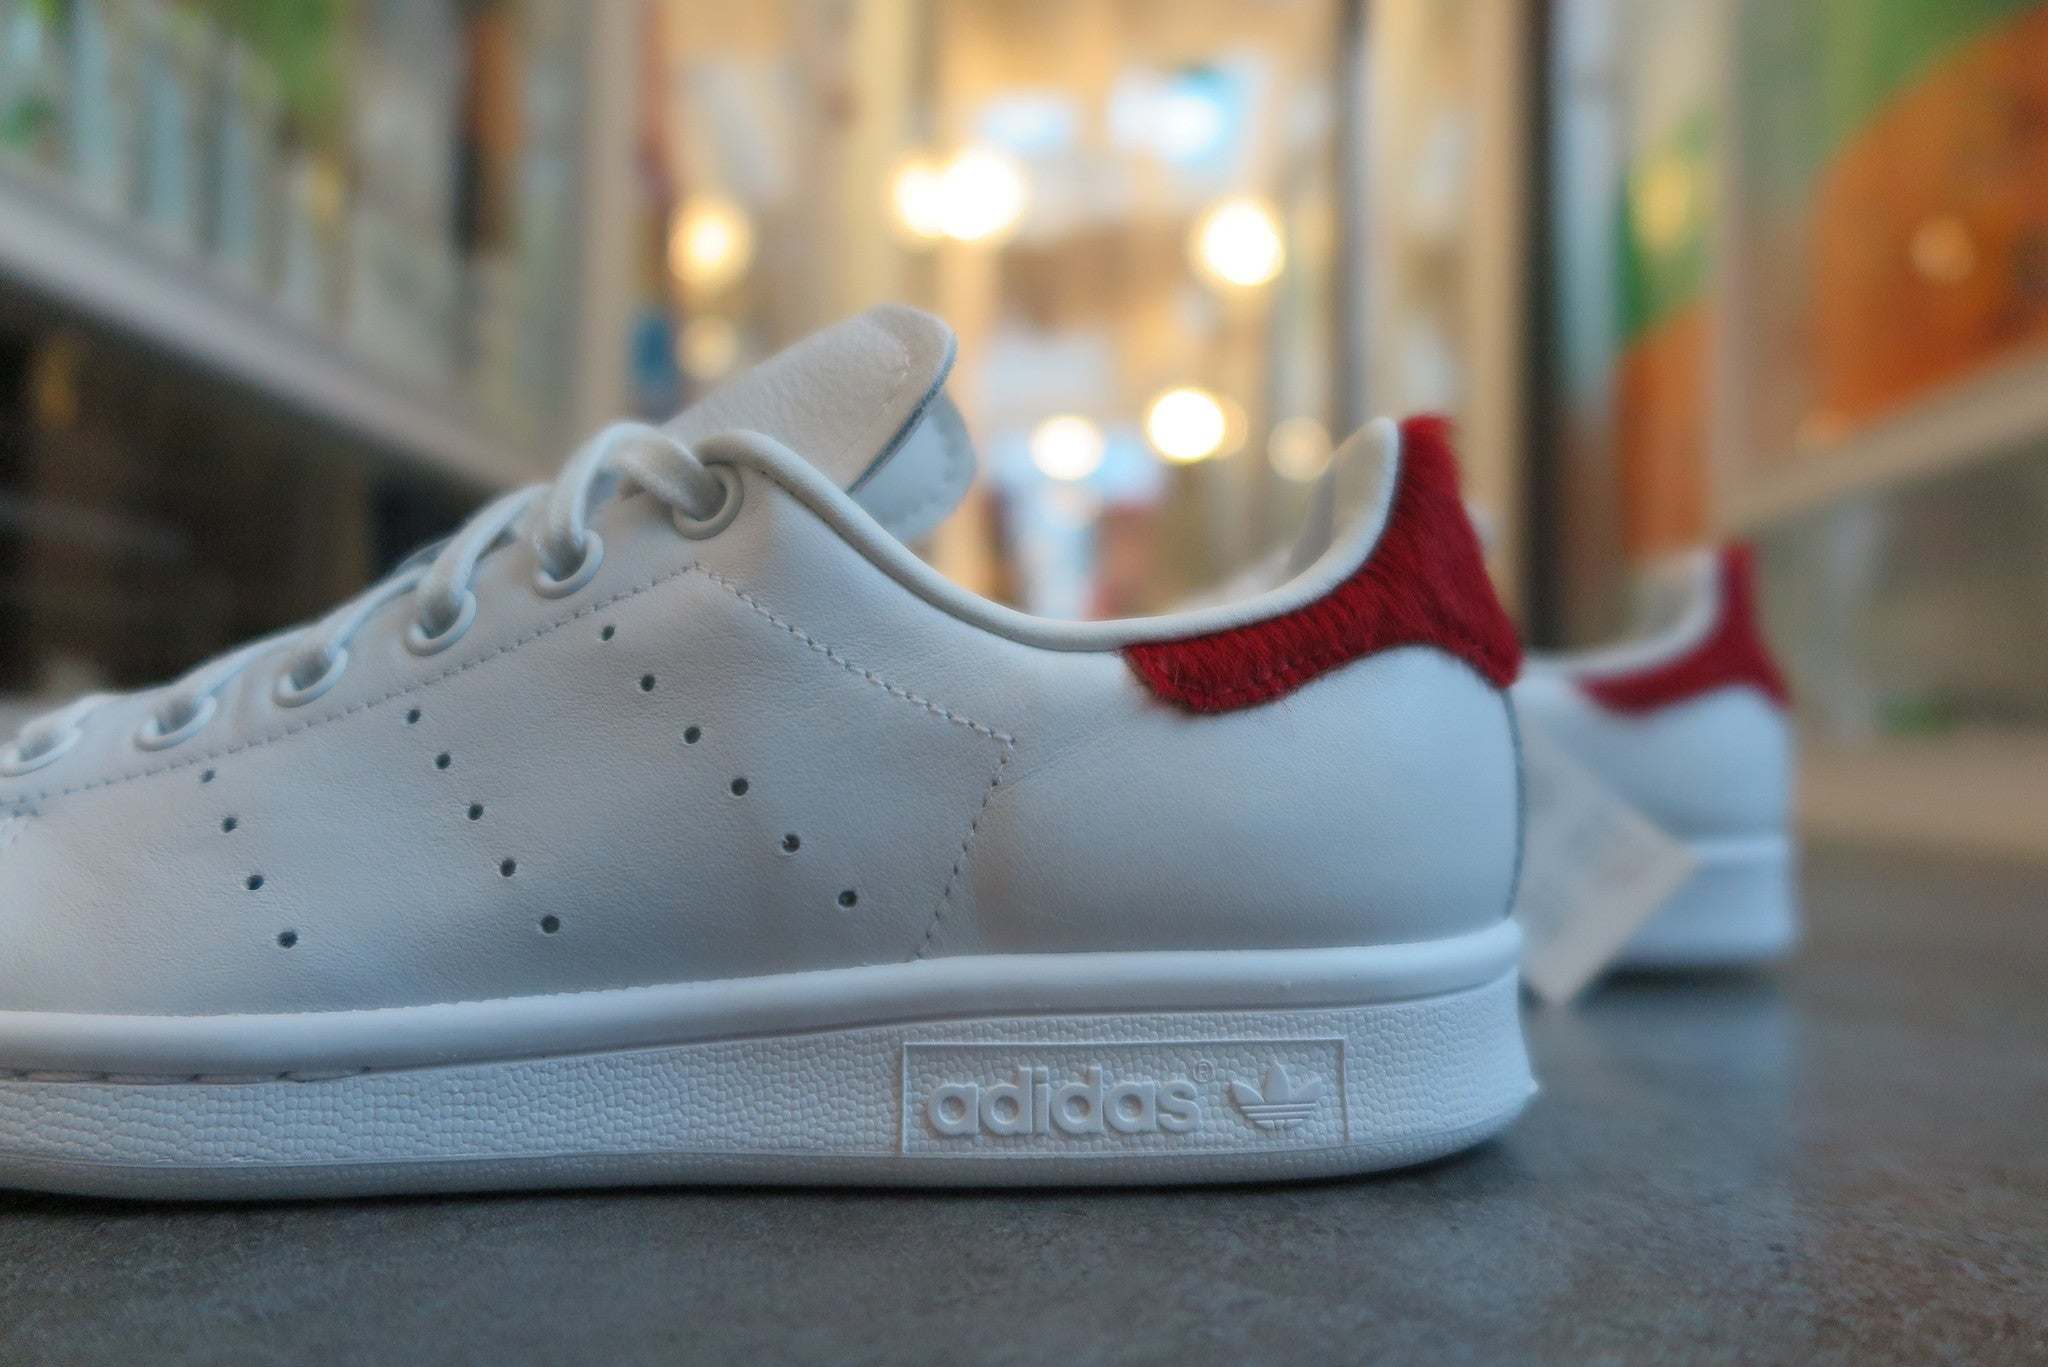 adidas WMNS Stan Smith in Vintage White/Red #S75562-Sneakers-Navy Selected Shop